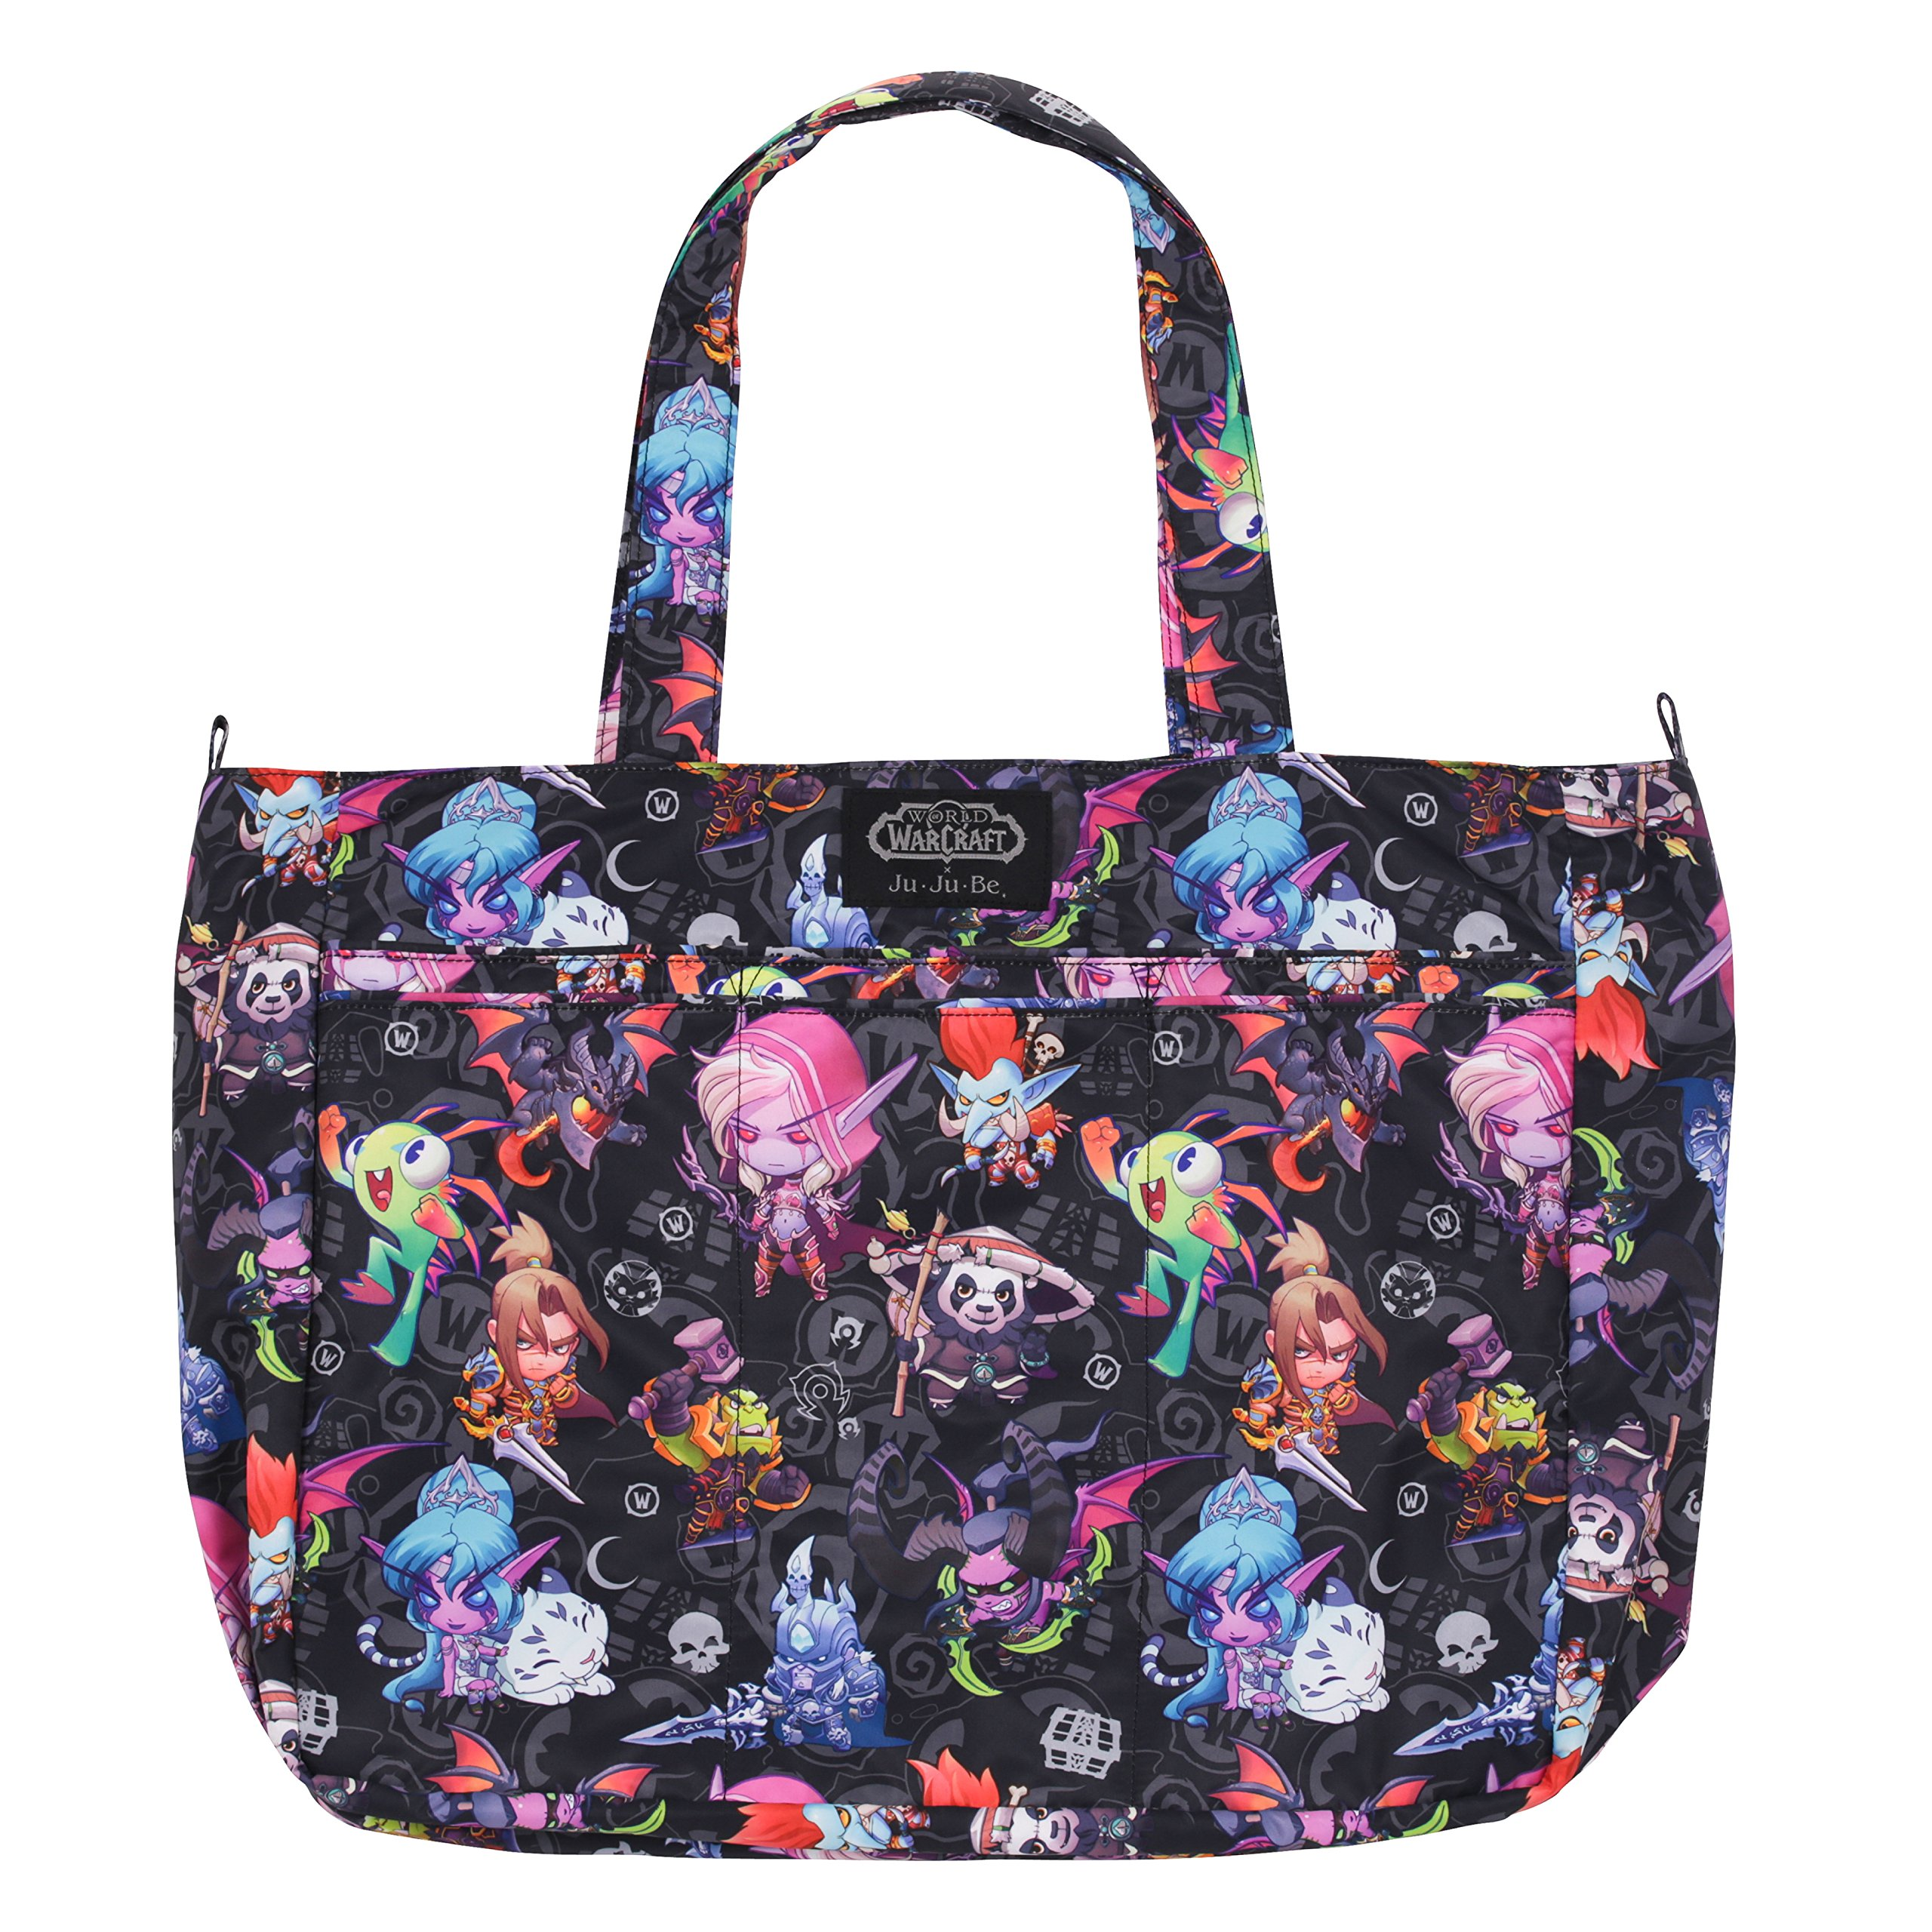 4a328dddb Amazon.com : JuJuBe Super Be Large Everyday Lightweight Zippered Tote Bag,  World of Warcraft Collection - Cute But Deadly : Baby